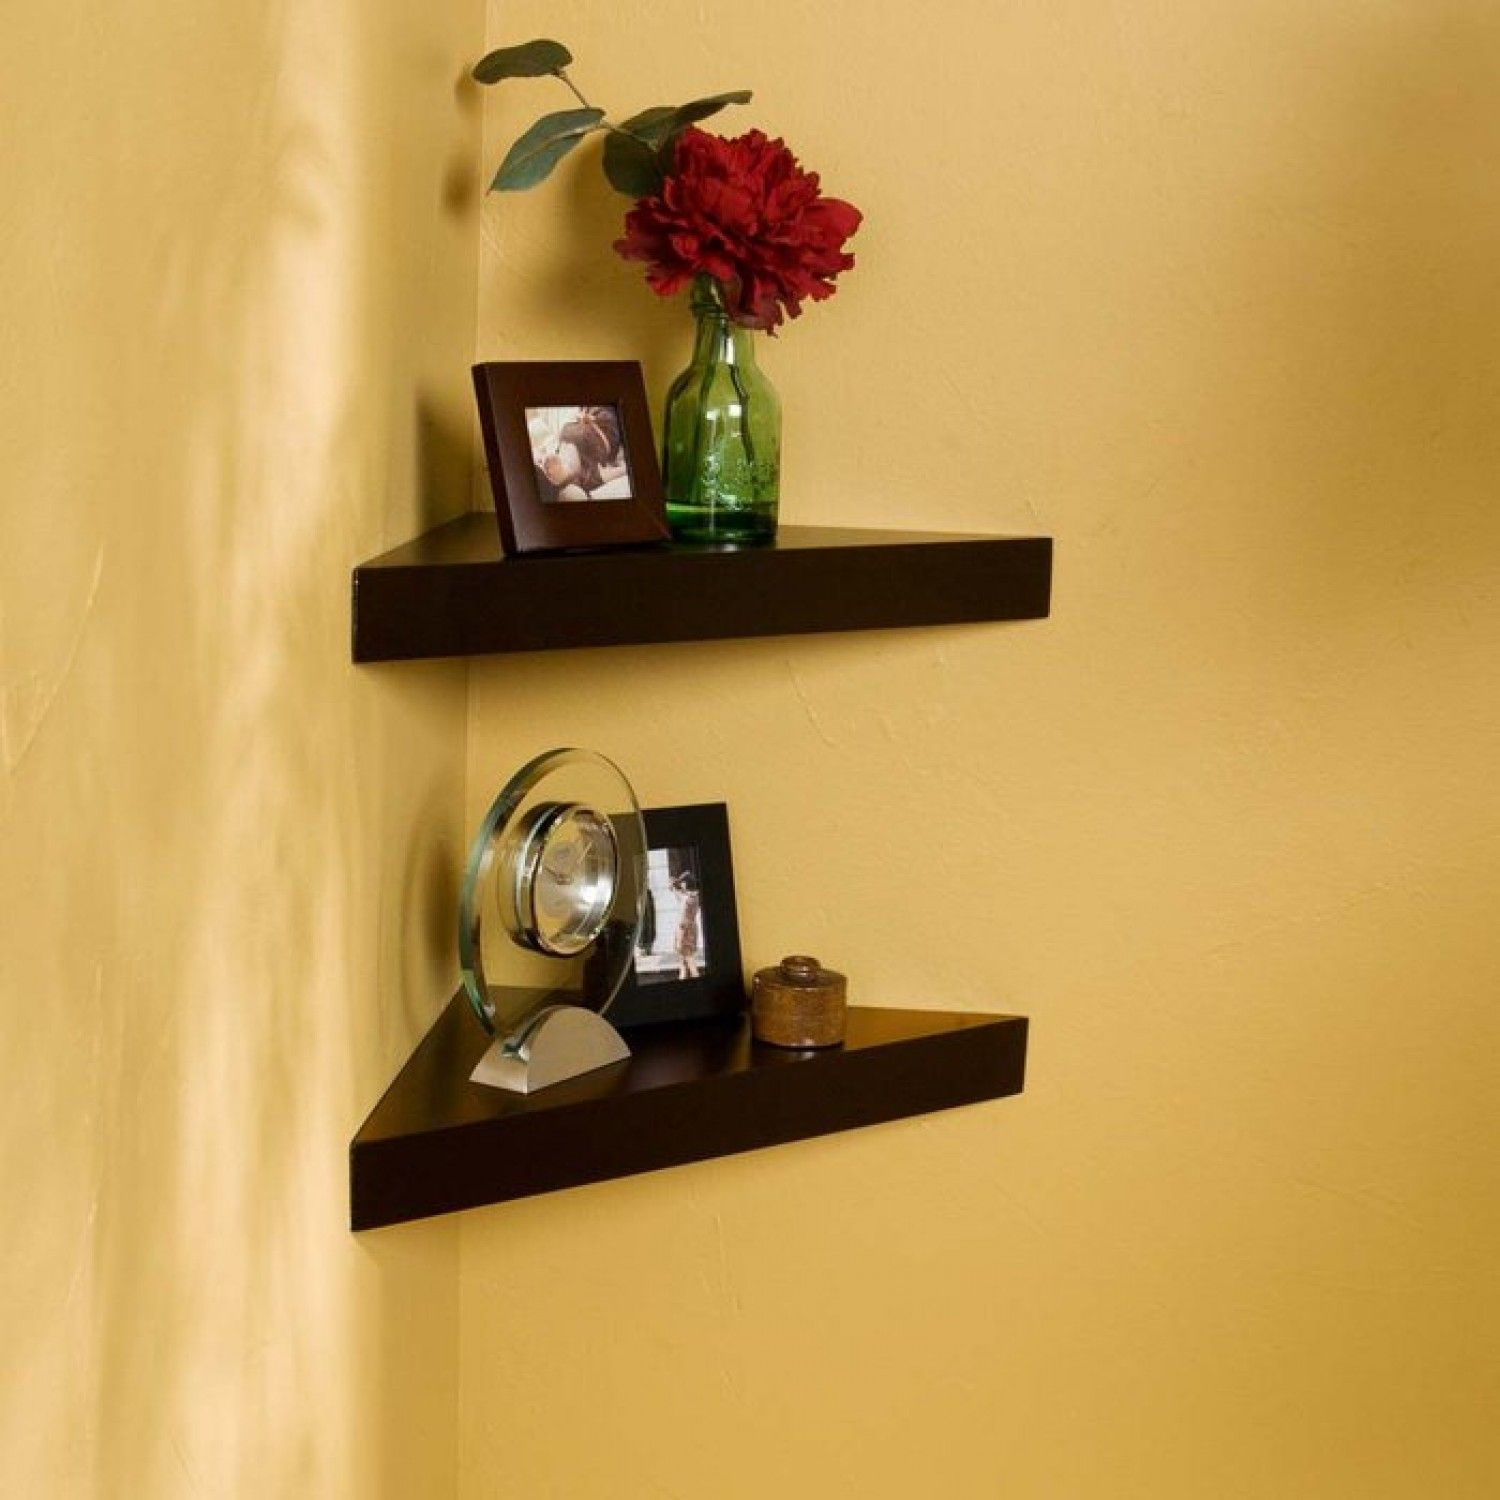 Fullsize Of Bedroom Corner Wall Shelves